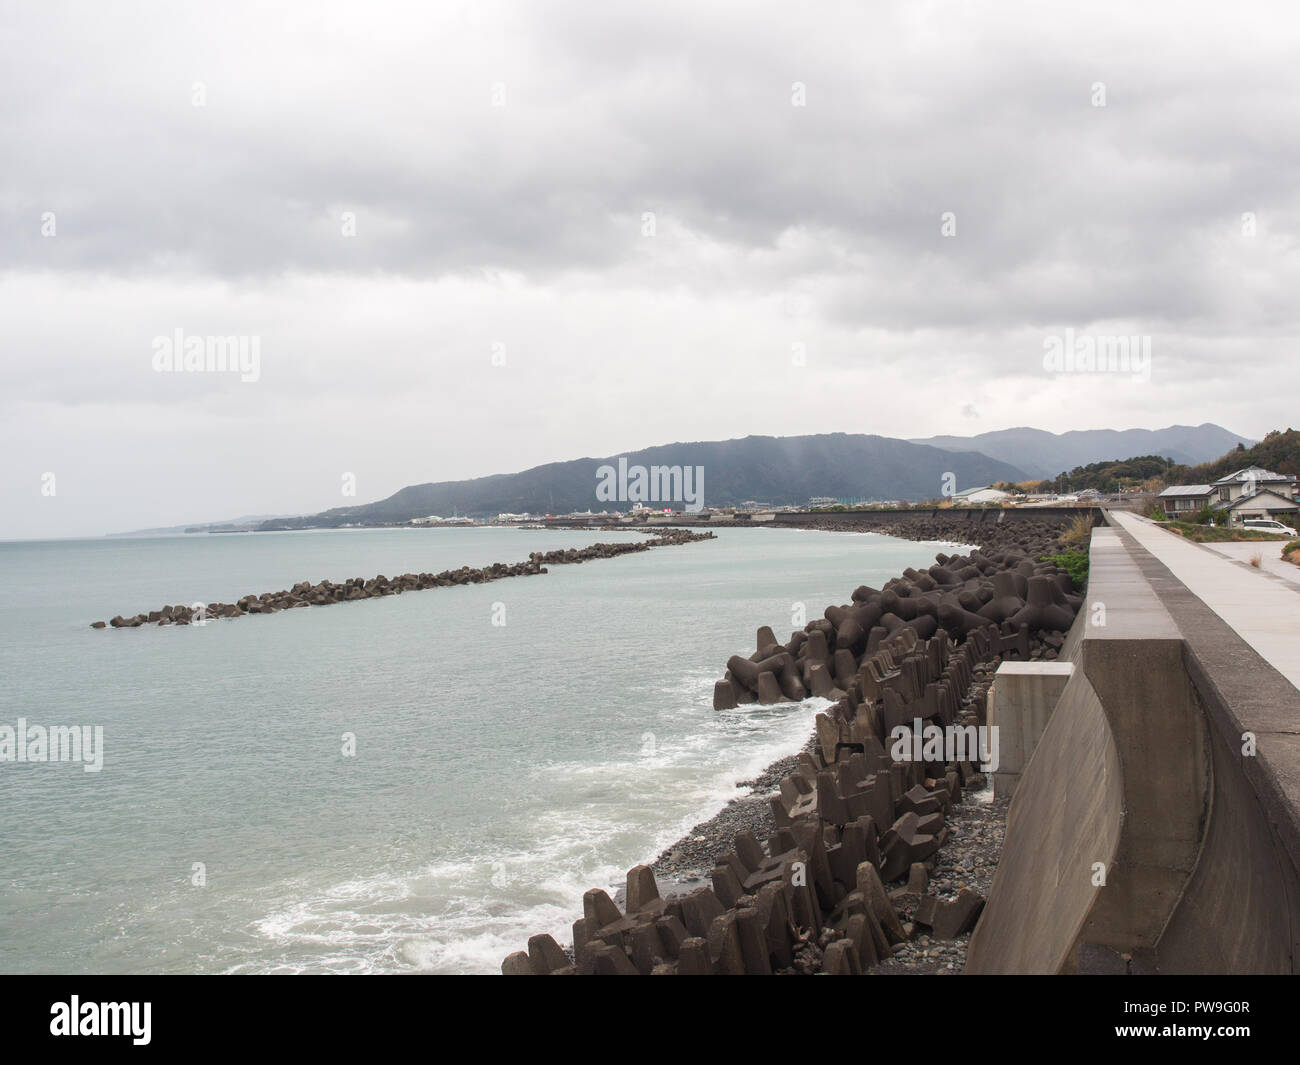 Tetrapods lining concrete sea wall, the curve of the coast, a tetrapod reef off-shore, coast protection, a town built along the shore, Aki, Kochi, Shi - Stock Image